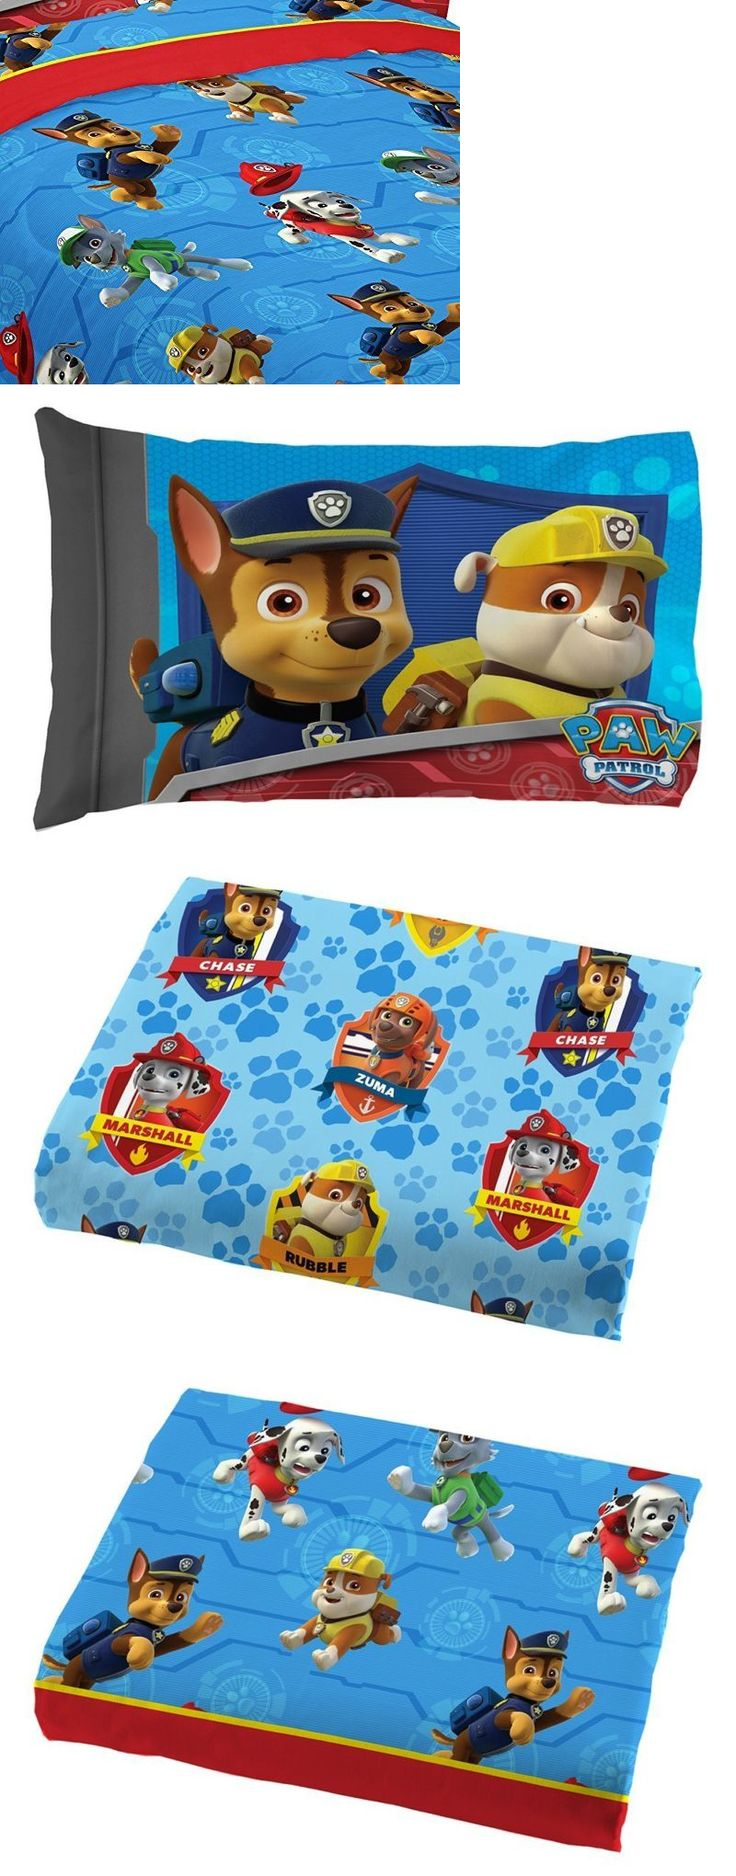 Comforters and Sets 66728: Toddler Twin Size Bed Sheets Boys Paw Patrol Rescue With Pillowcase Bedding Set -> BUY IT NOW ONLY: $31.04 on eBay!